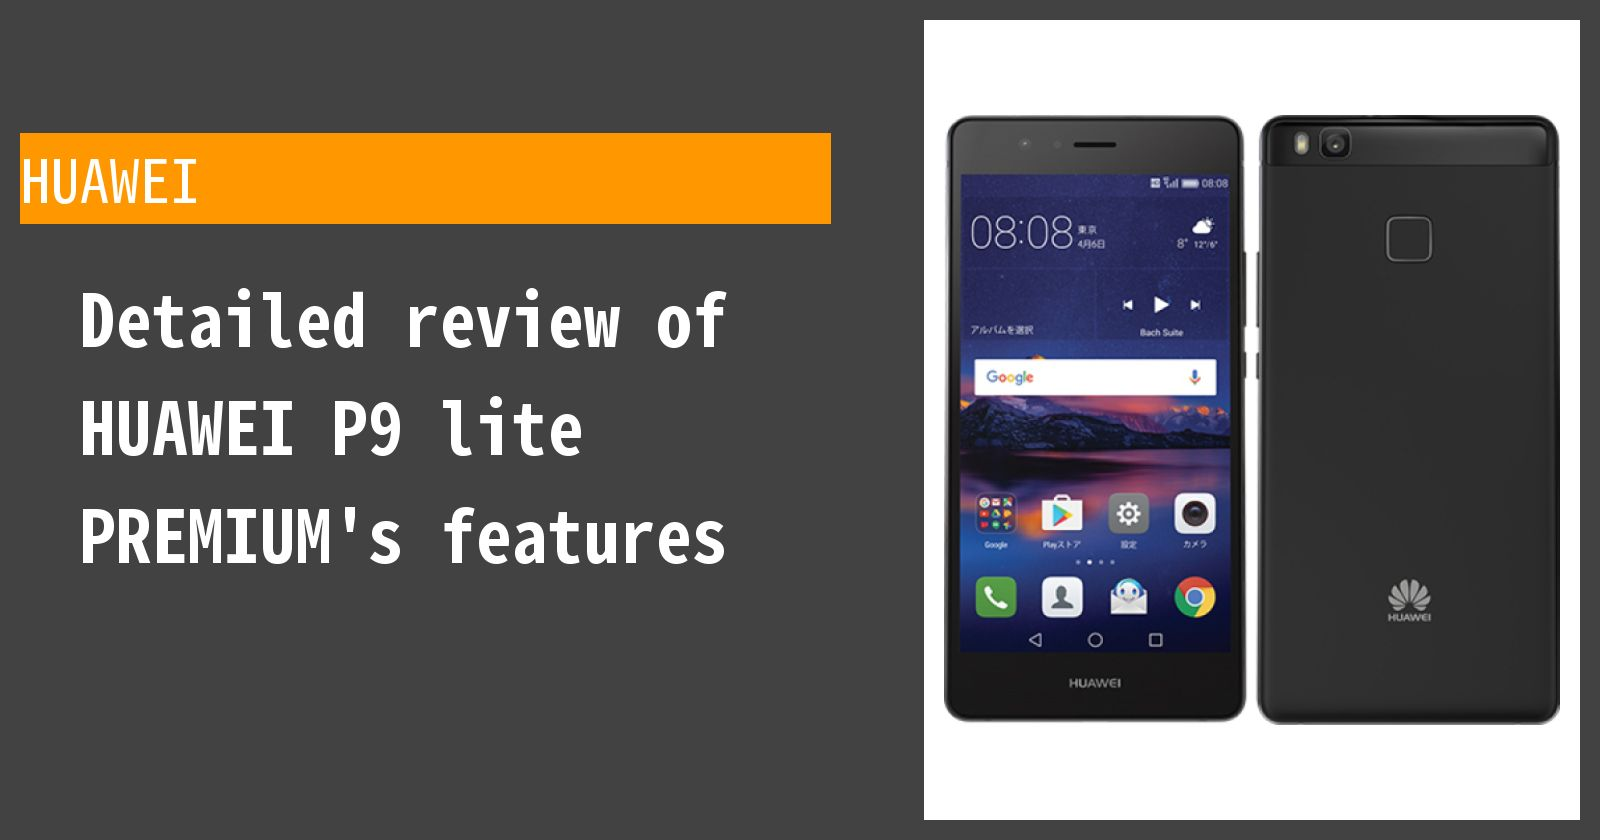 Detailed review of HUAWEI P9 lite PREMIUM's features